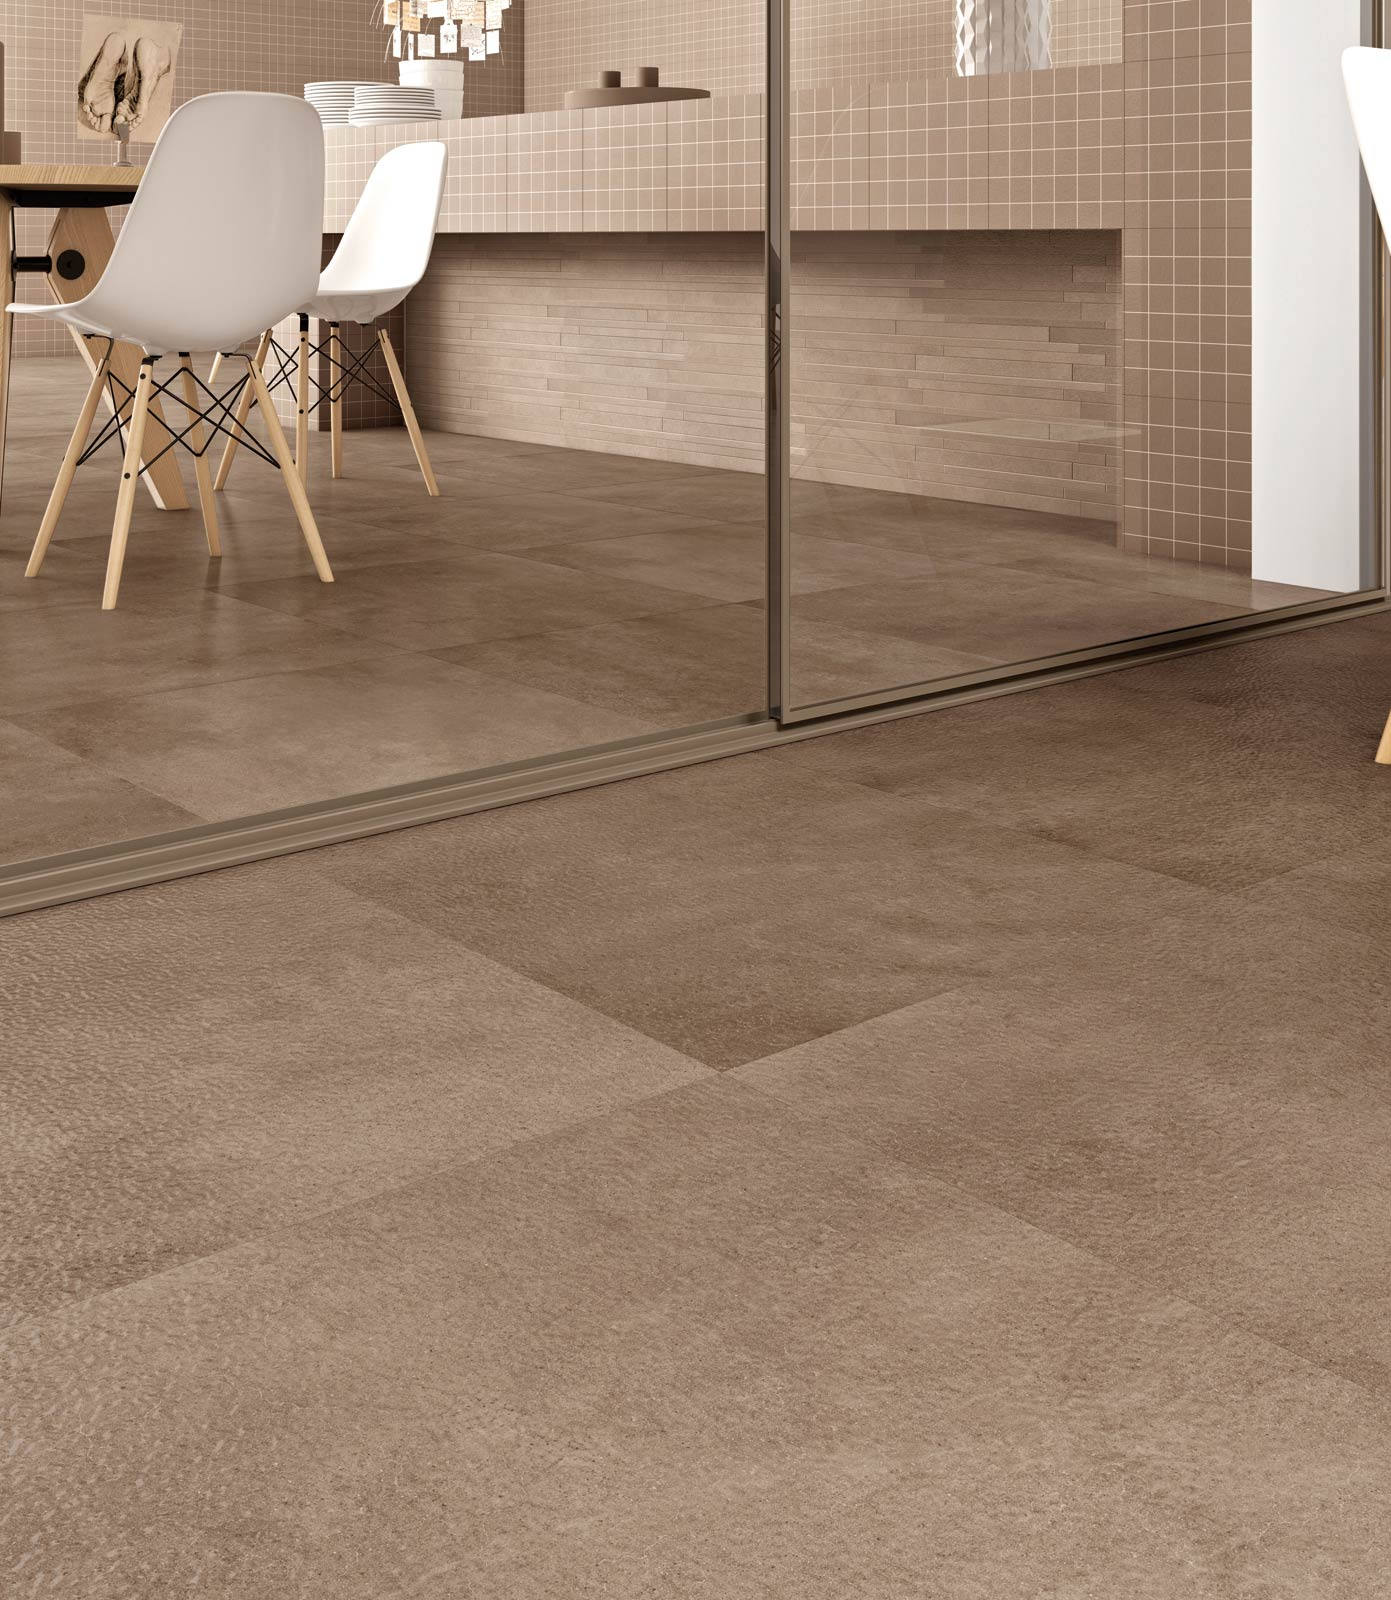 Denver gres porcellanato effetto cemento marazzi for Piastrelle per interno piscina